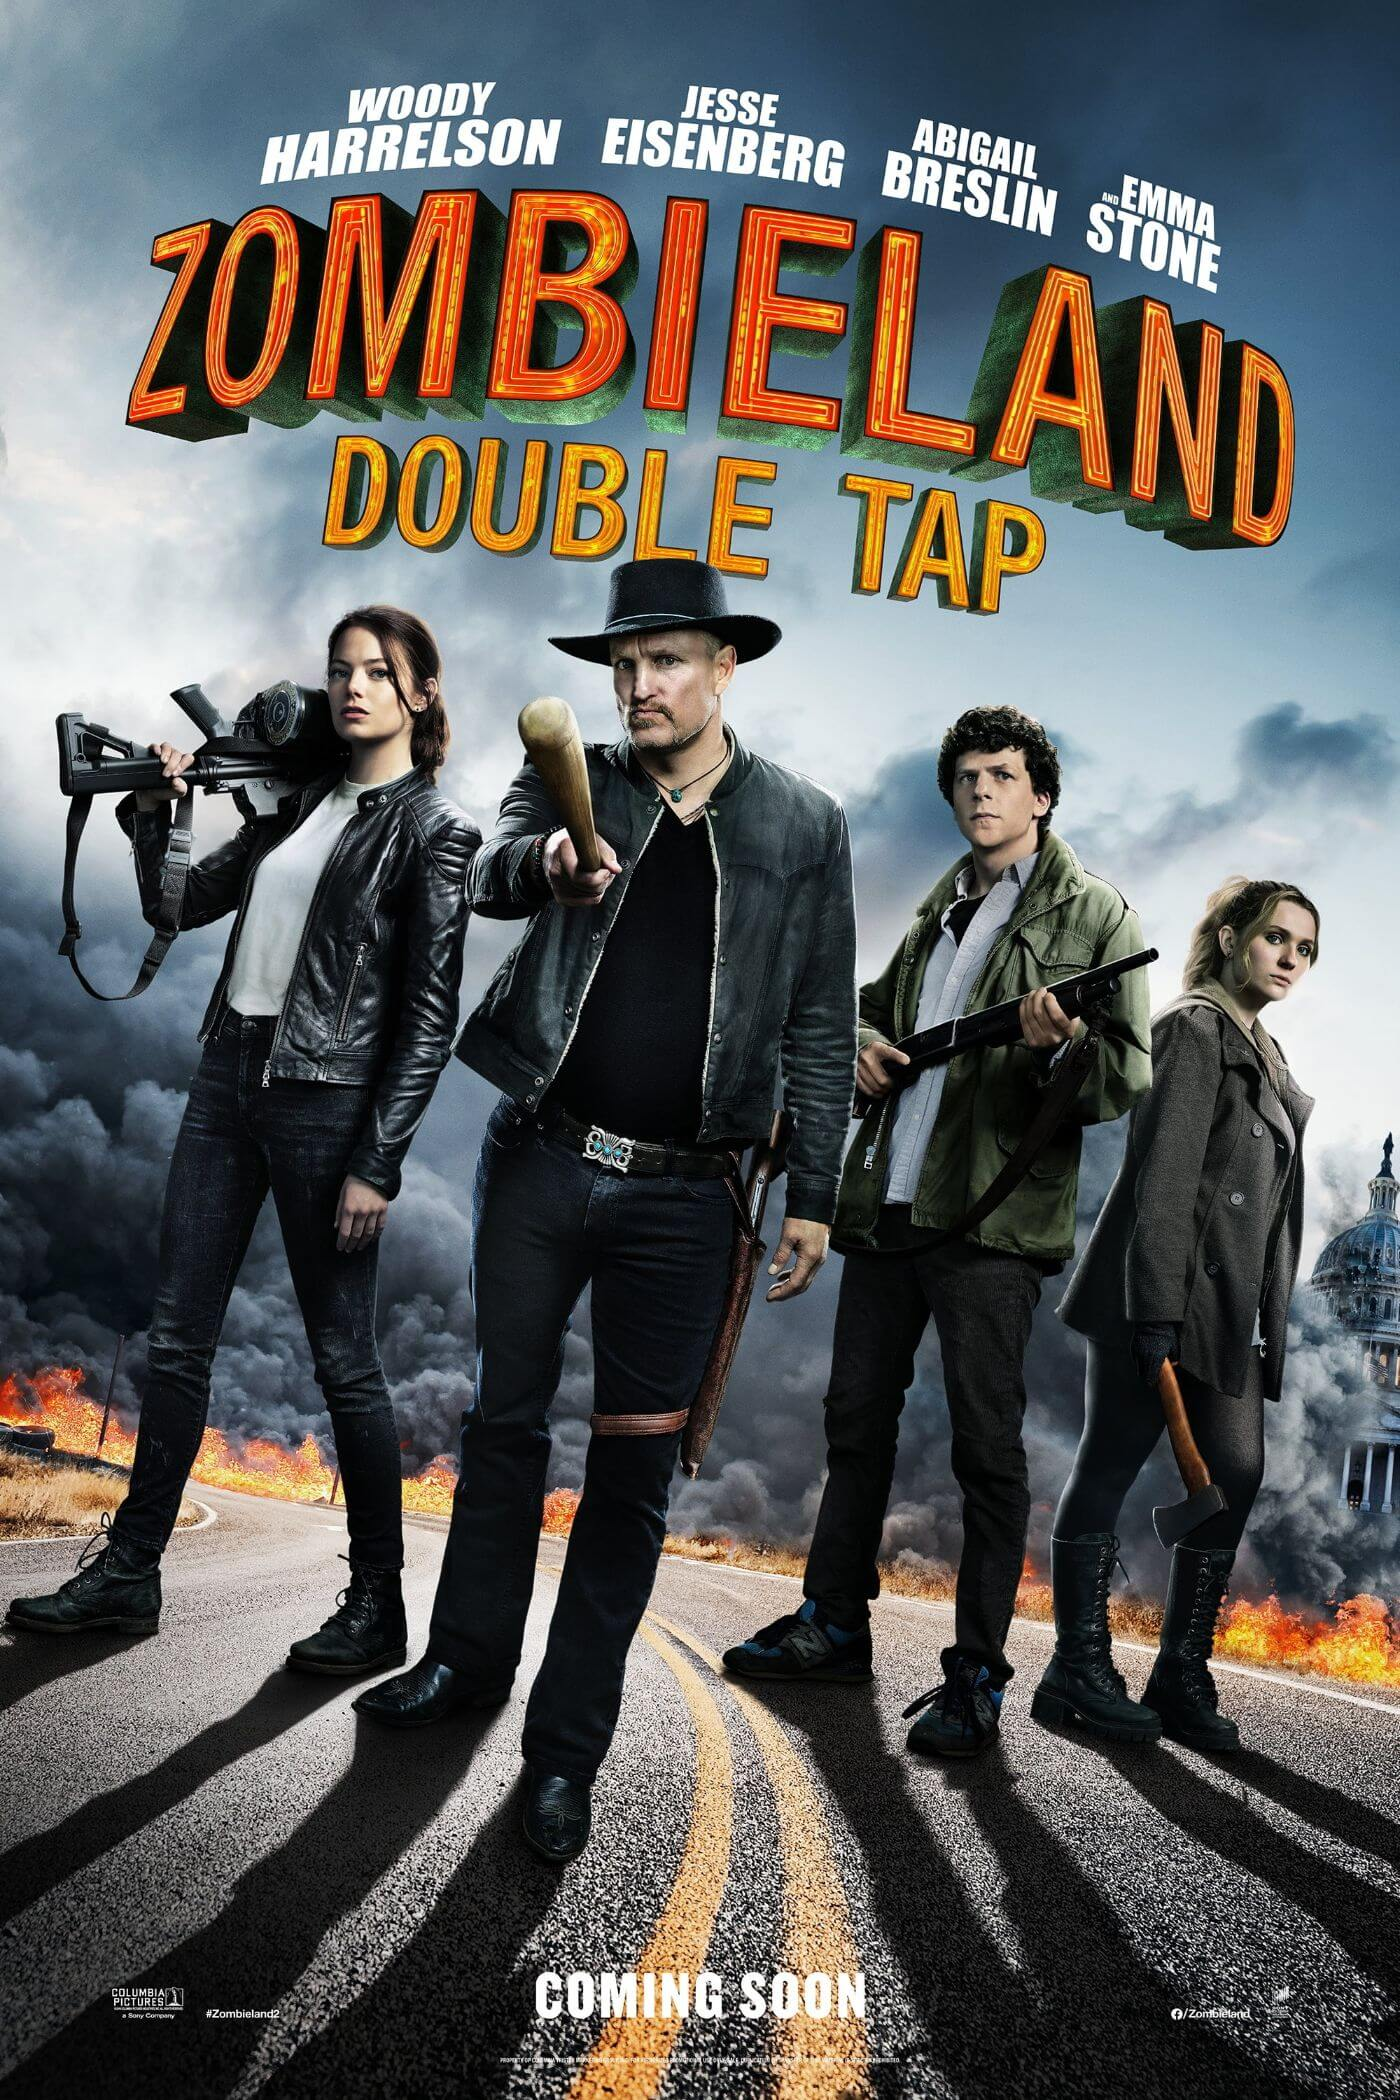 Zombieland Double Tap - Woody Harrelson Emma Stone - Hollywood Action Movie Poster